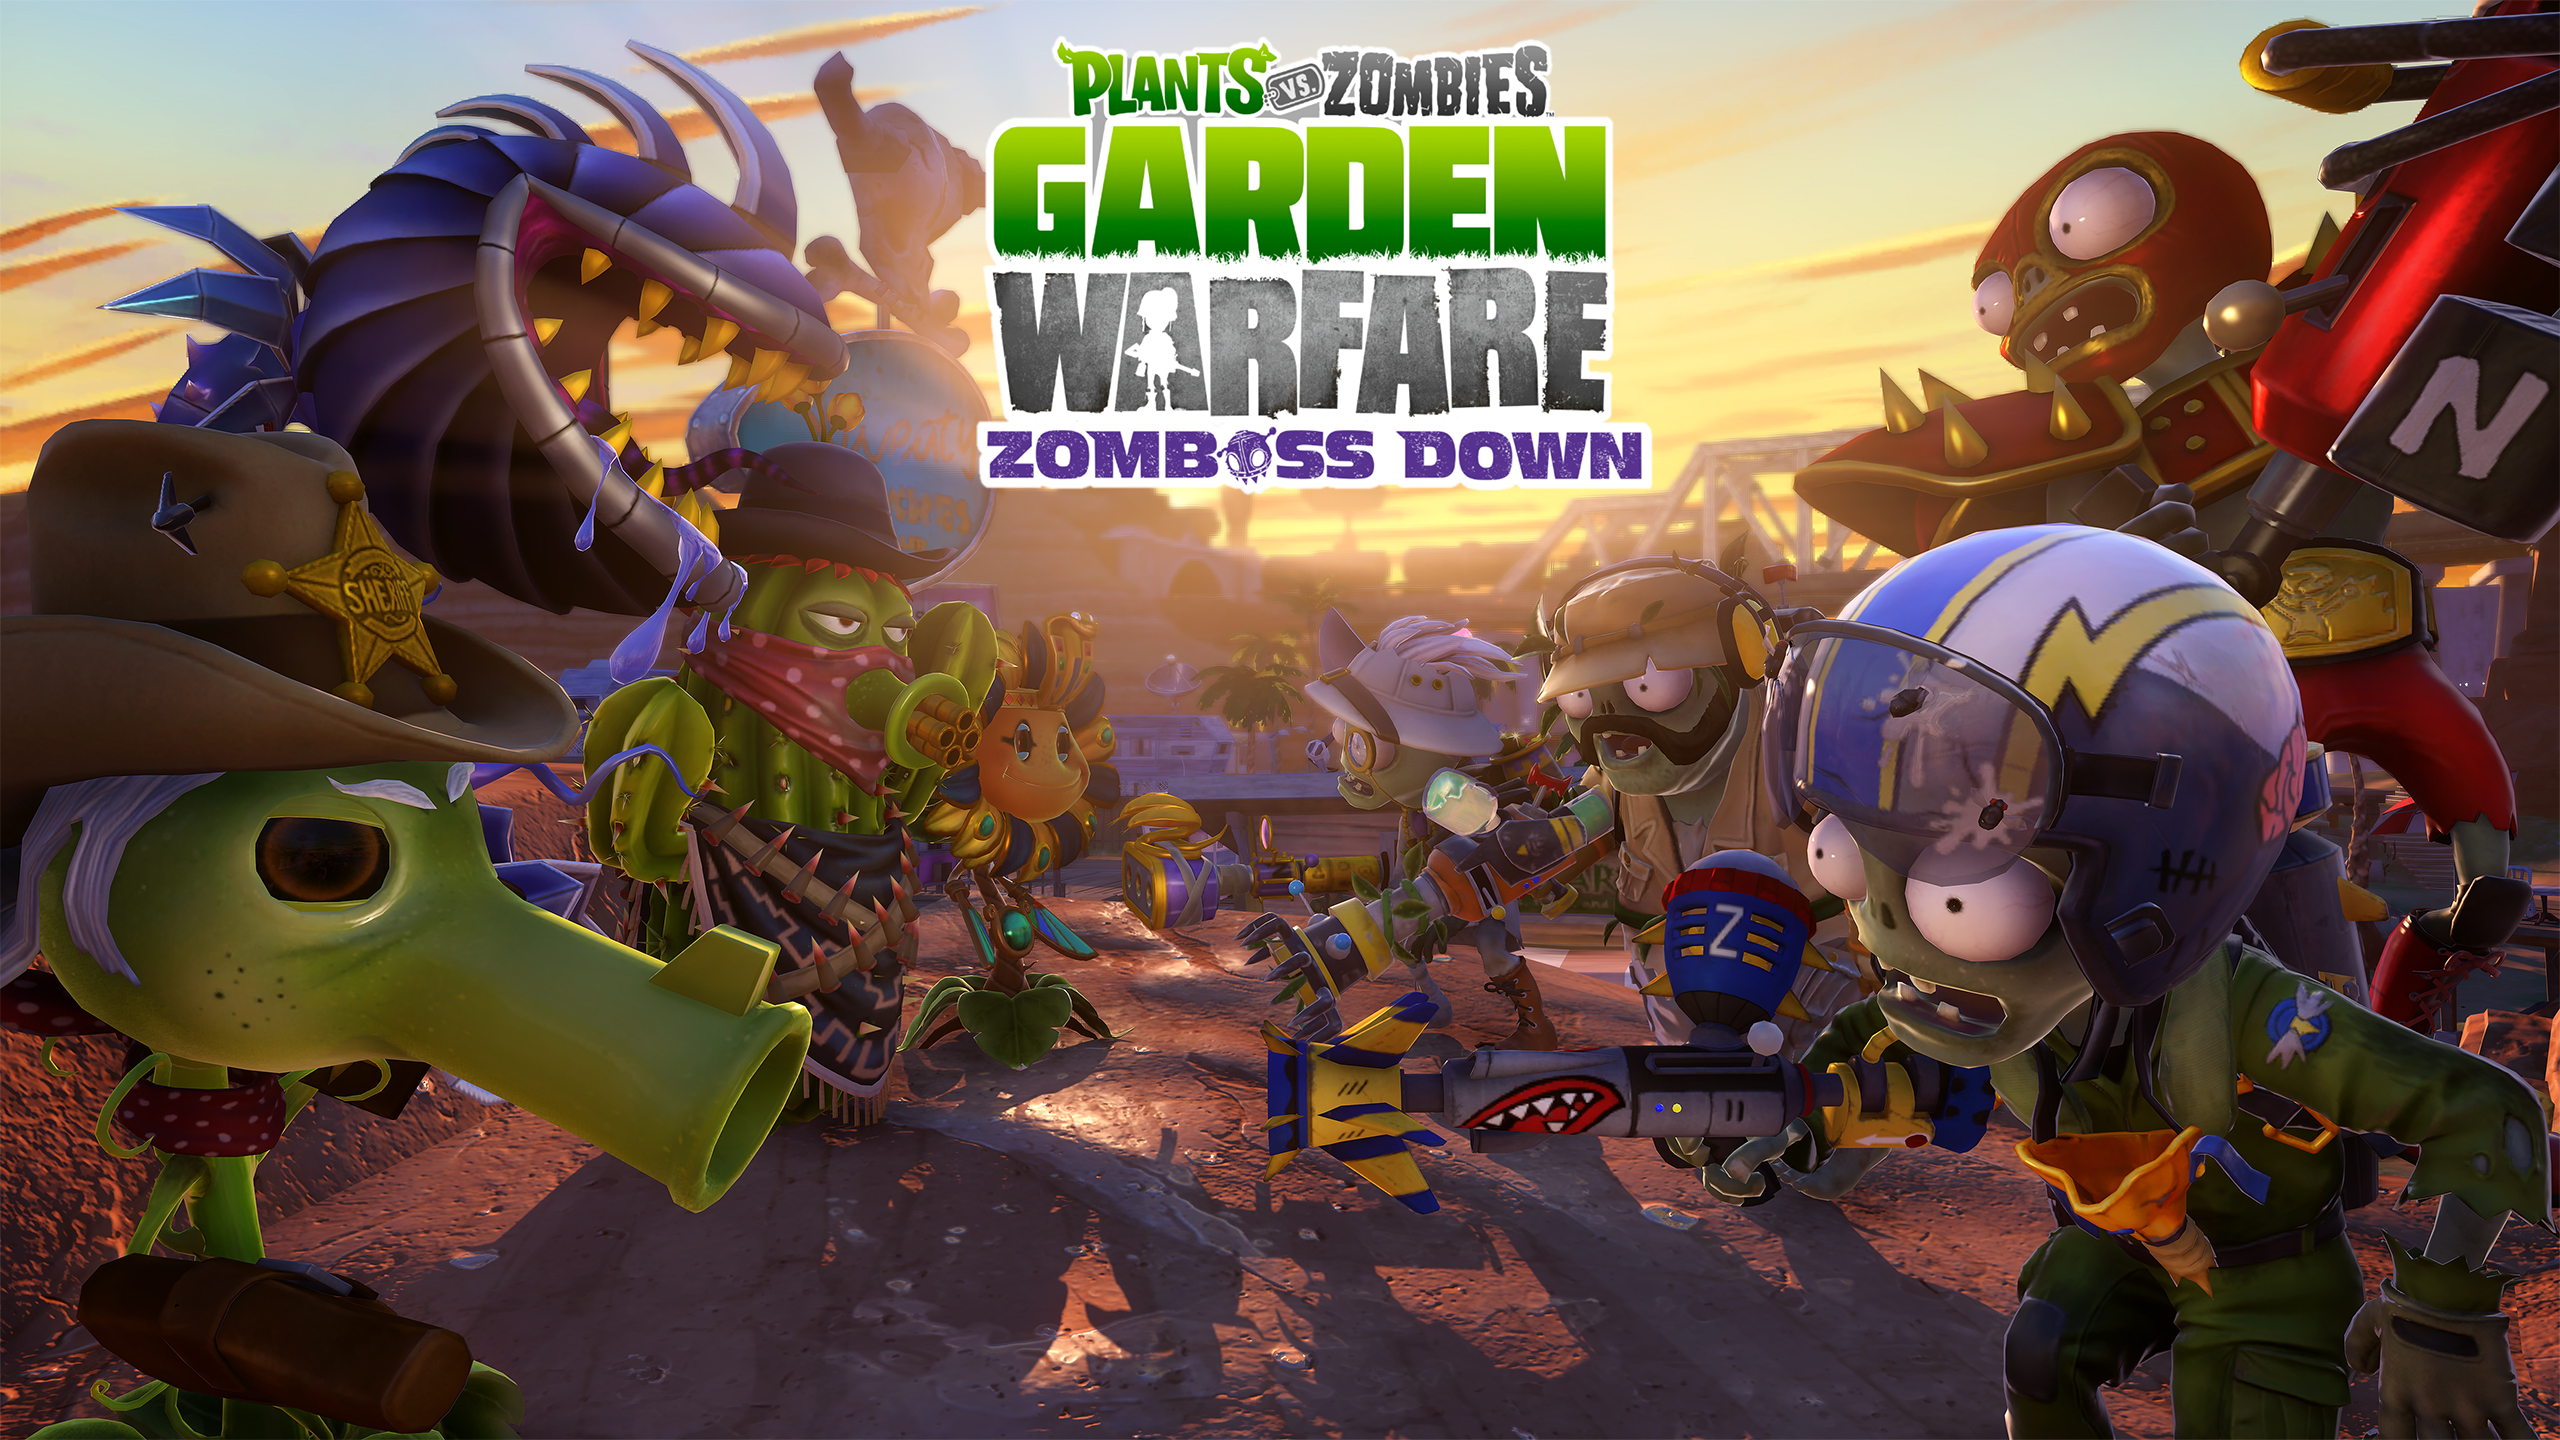 Zomboss Down DLC now available for Plants vs Zombies Garden Warfare ...